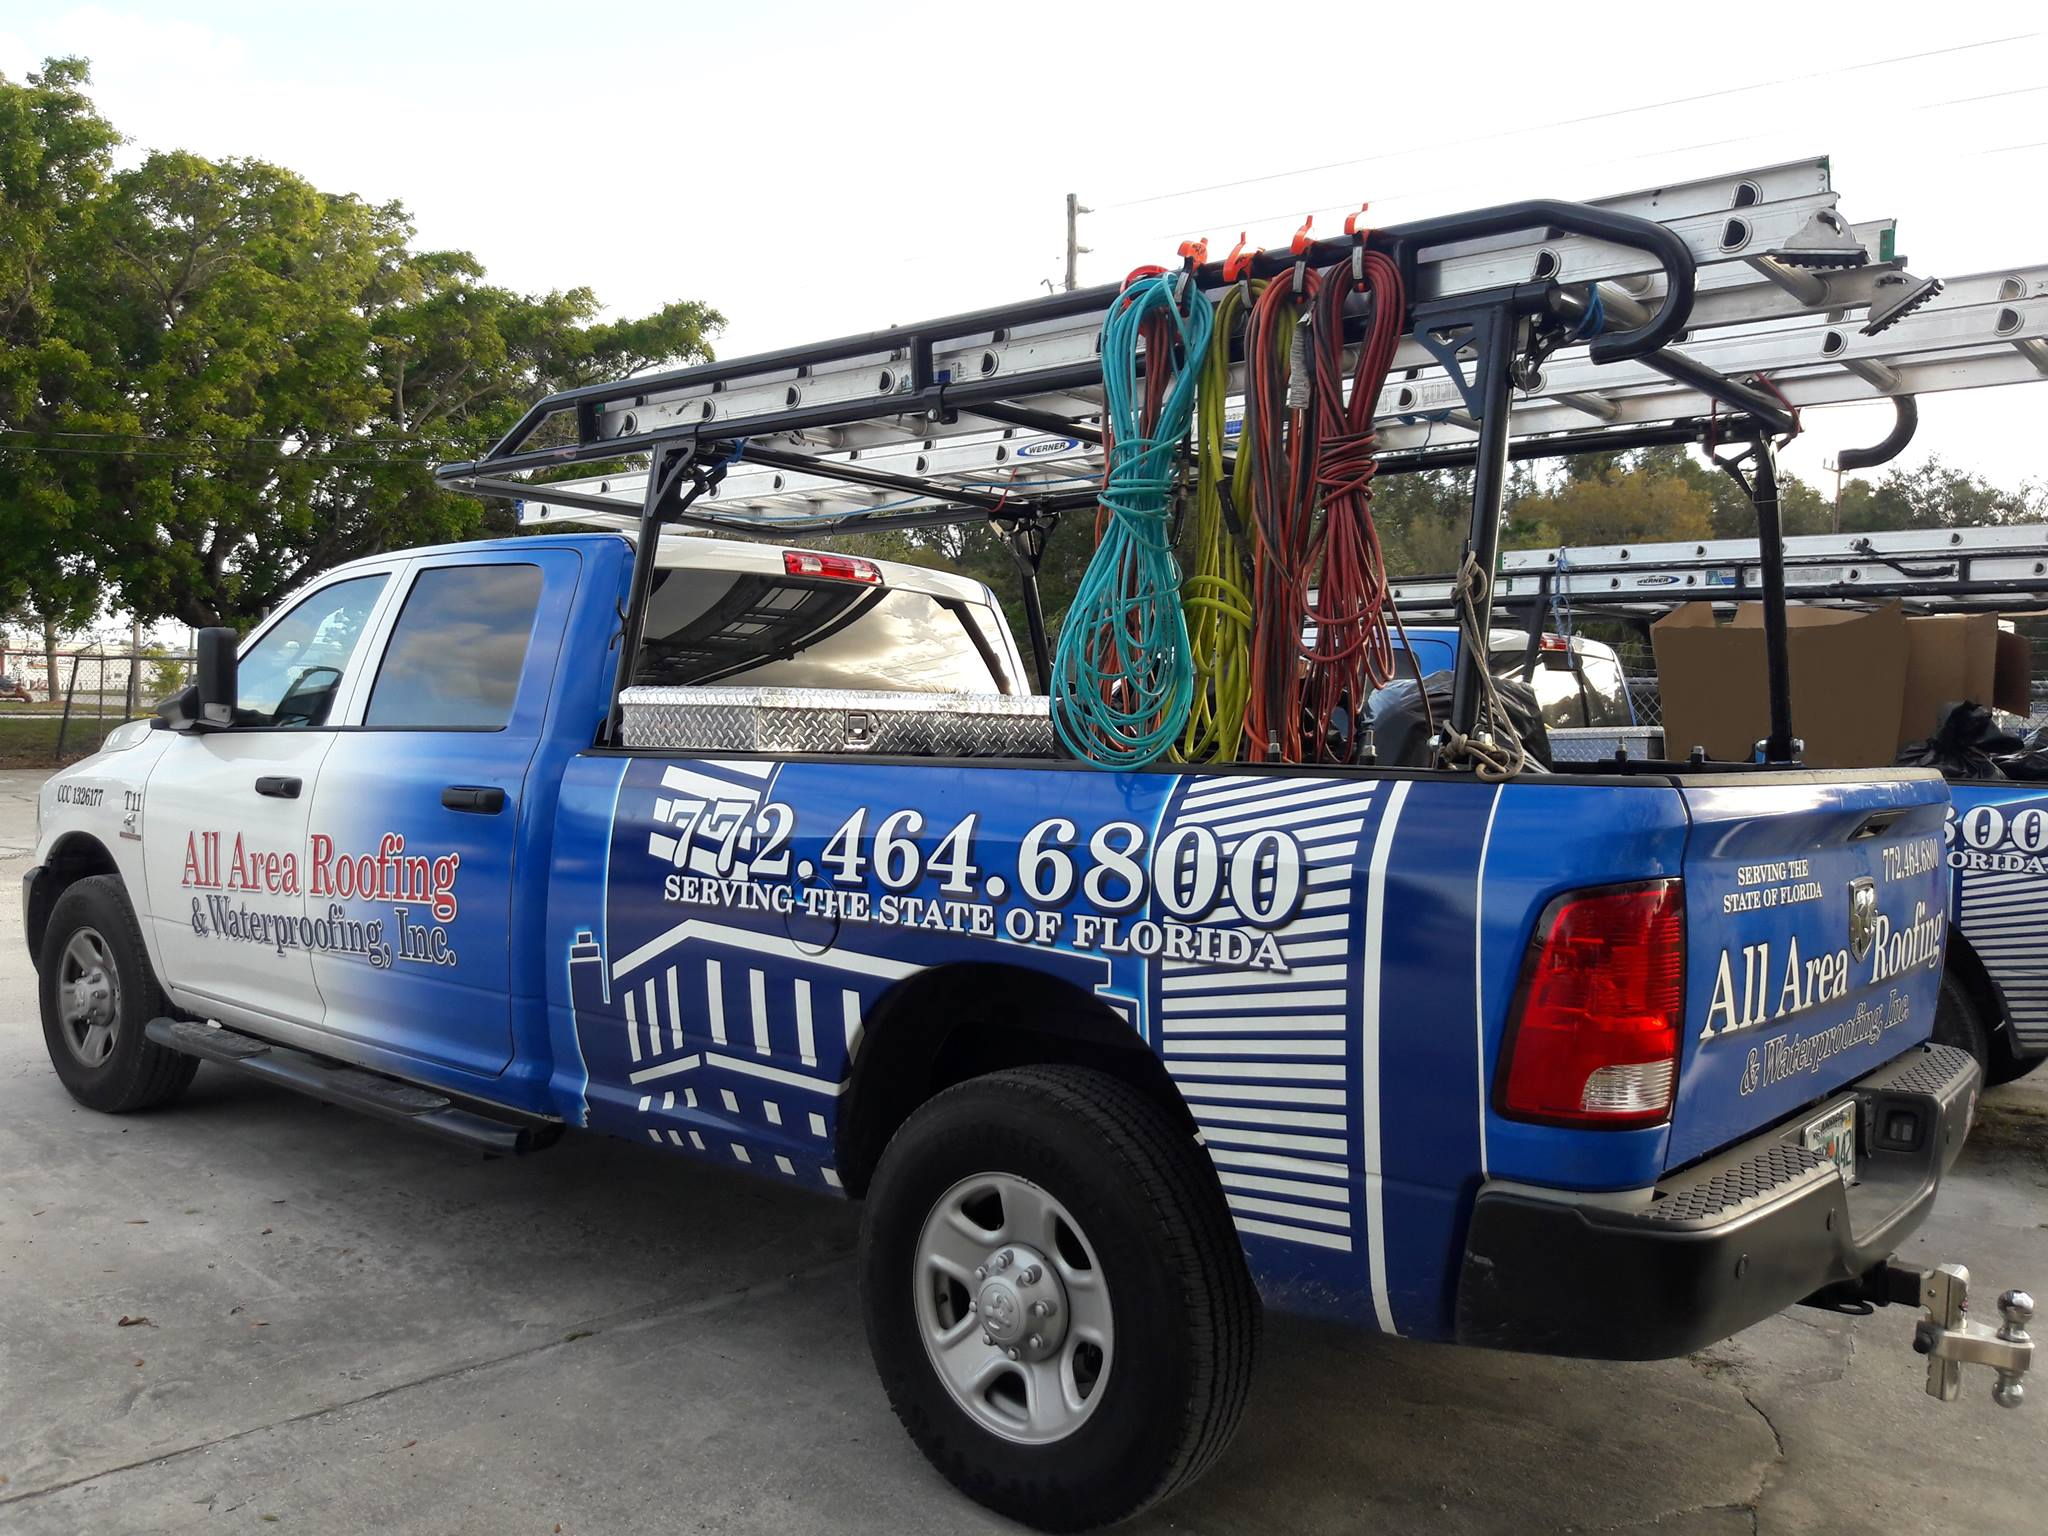 All Area Roofing & Construction